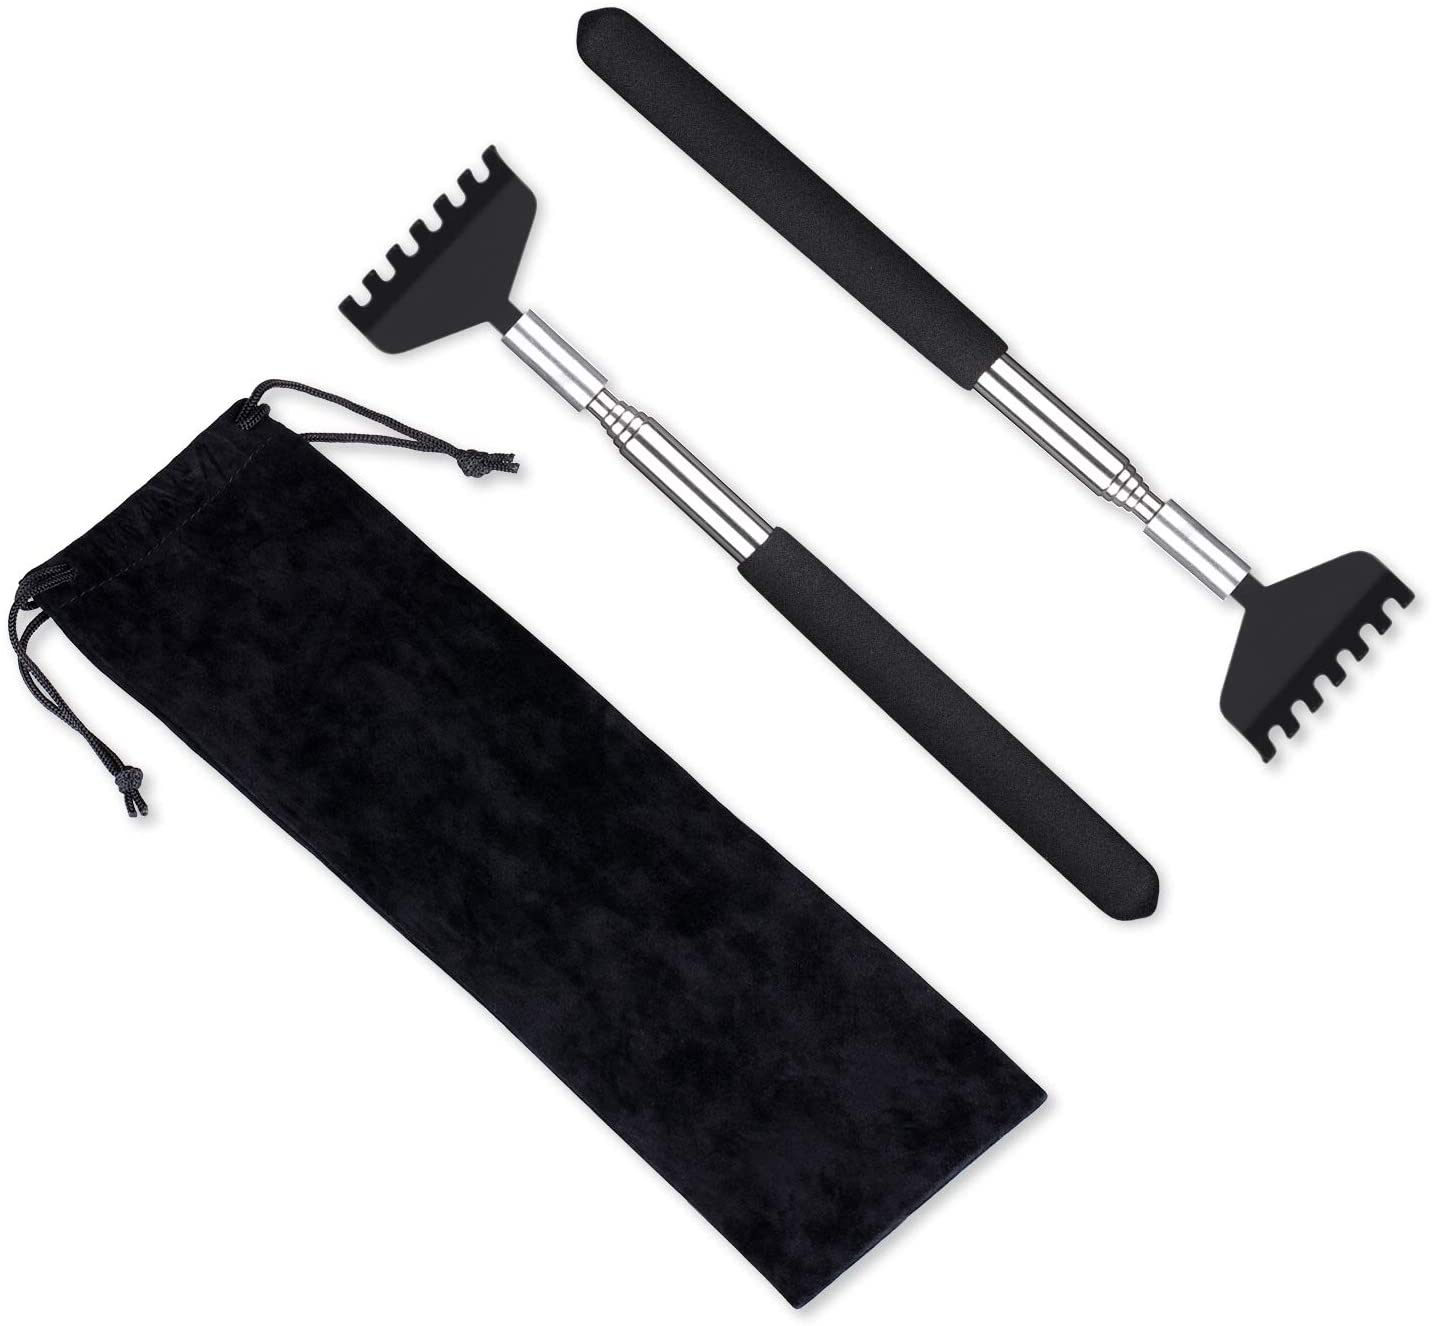 Flanker-L 2-Pack Portable Extendable Back Scratcher